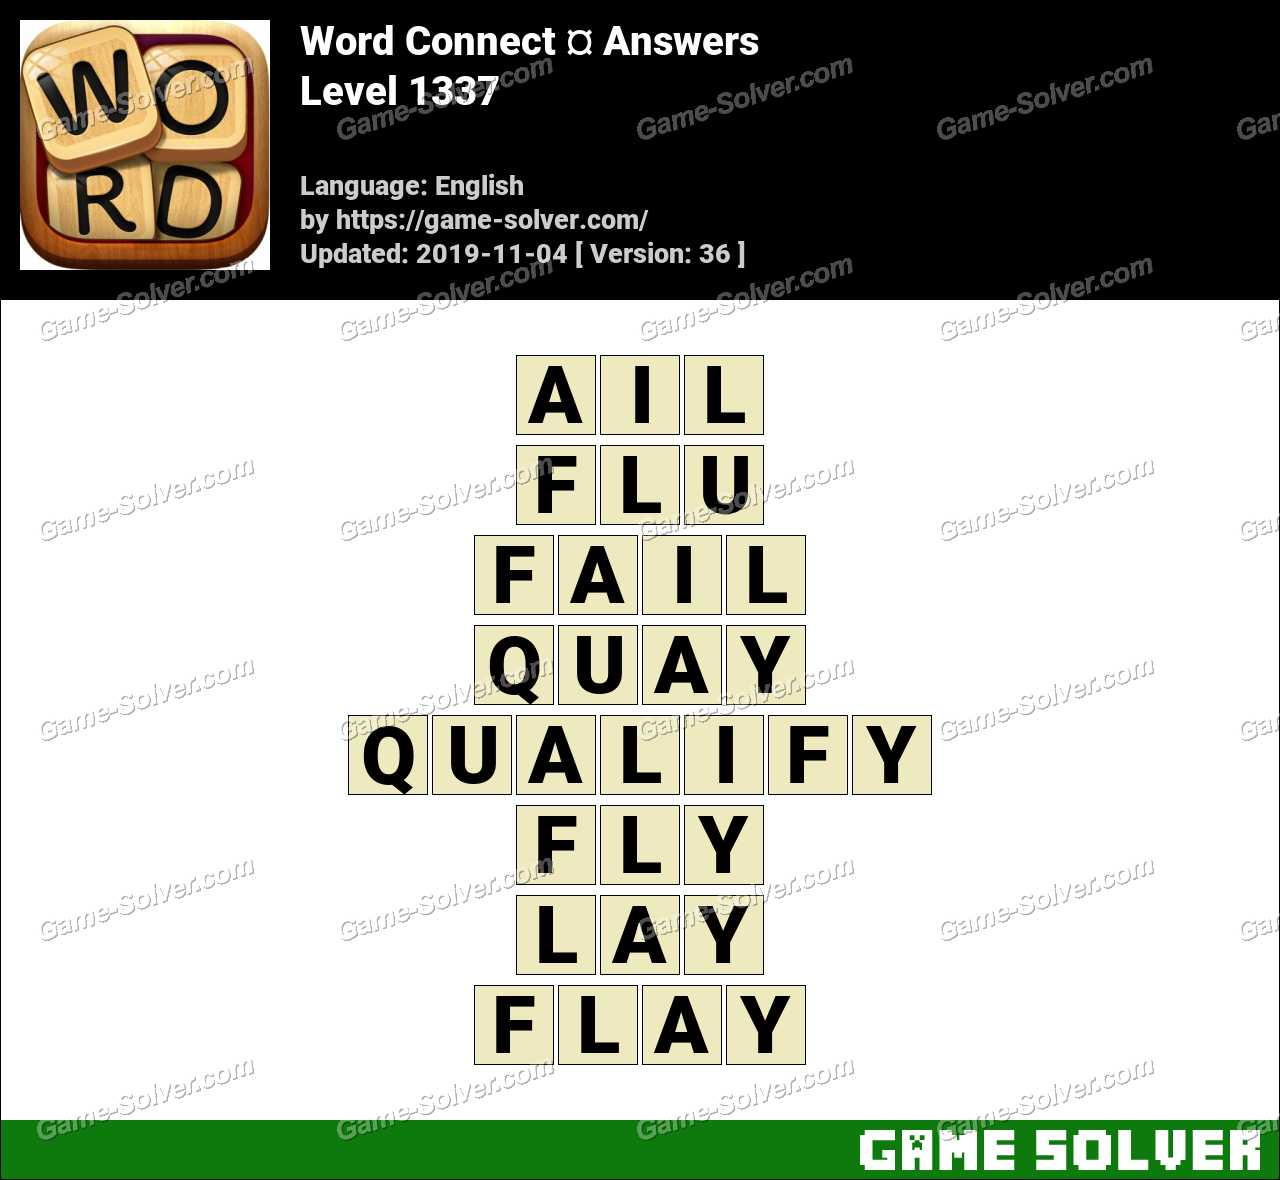 Word Connect Level 1337 Answers